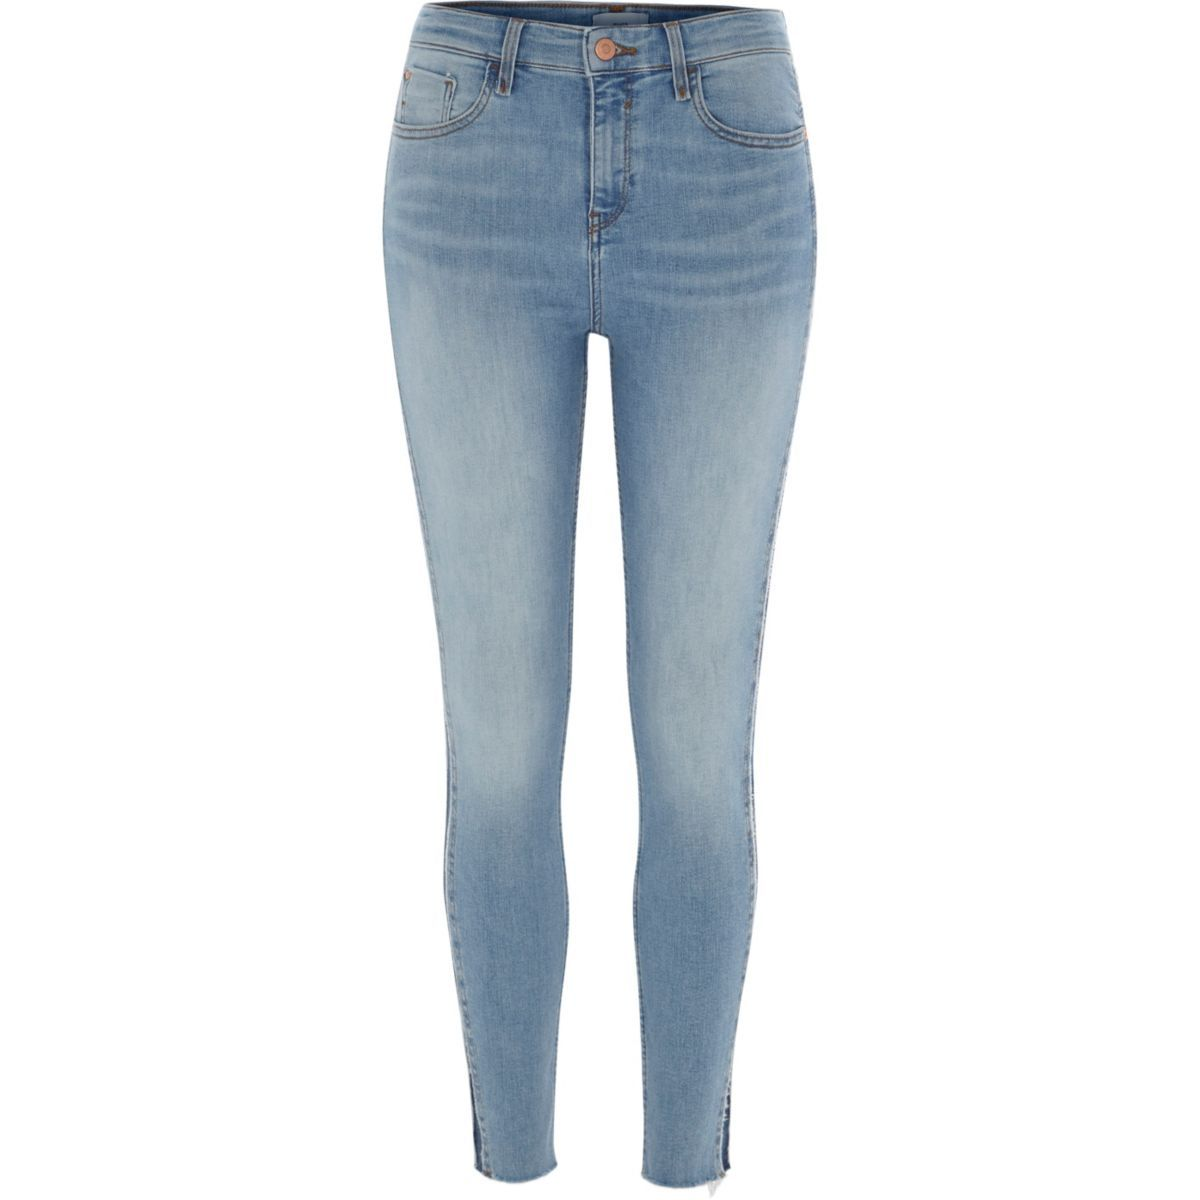 For Sale Wholesale Price Footaction Womens Mid Blue Amelie mid rise shadow panel jeans River Island zGWDkonJ